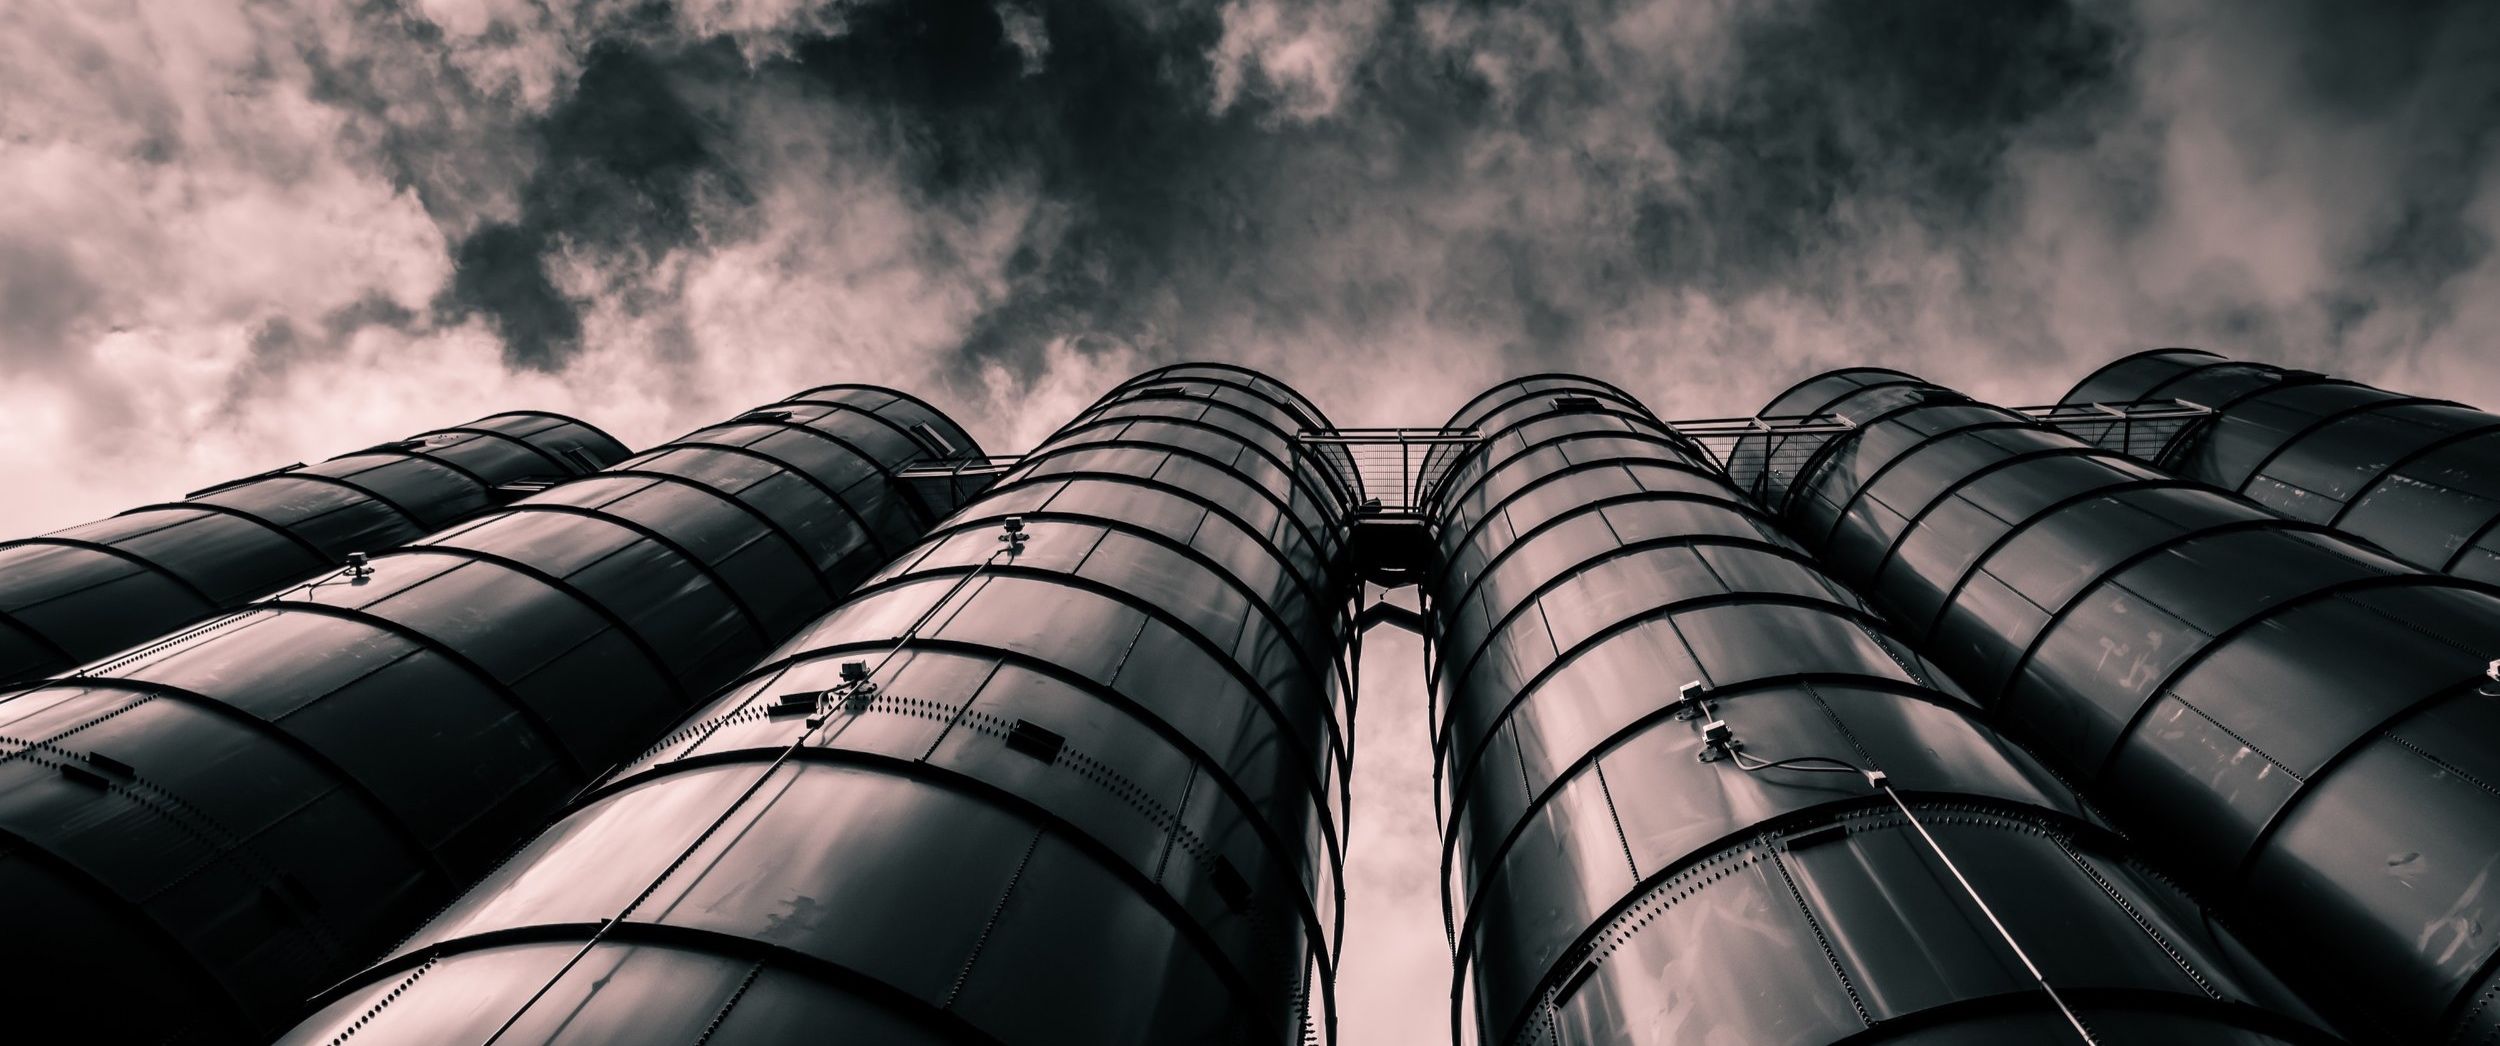 clouds-dramatic-factory-1385056.jpg